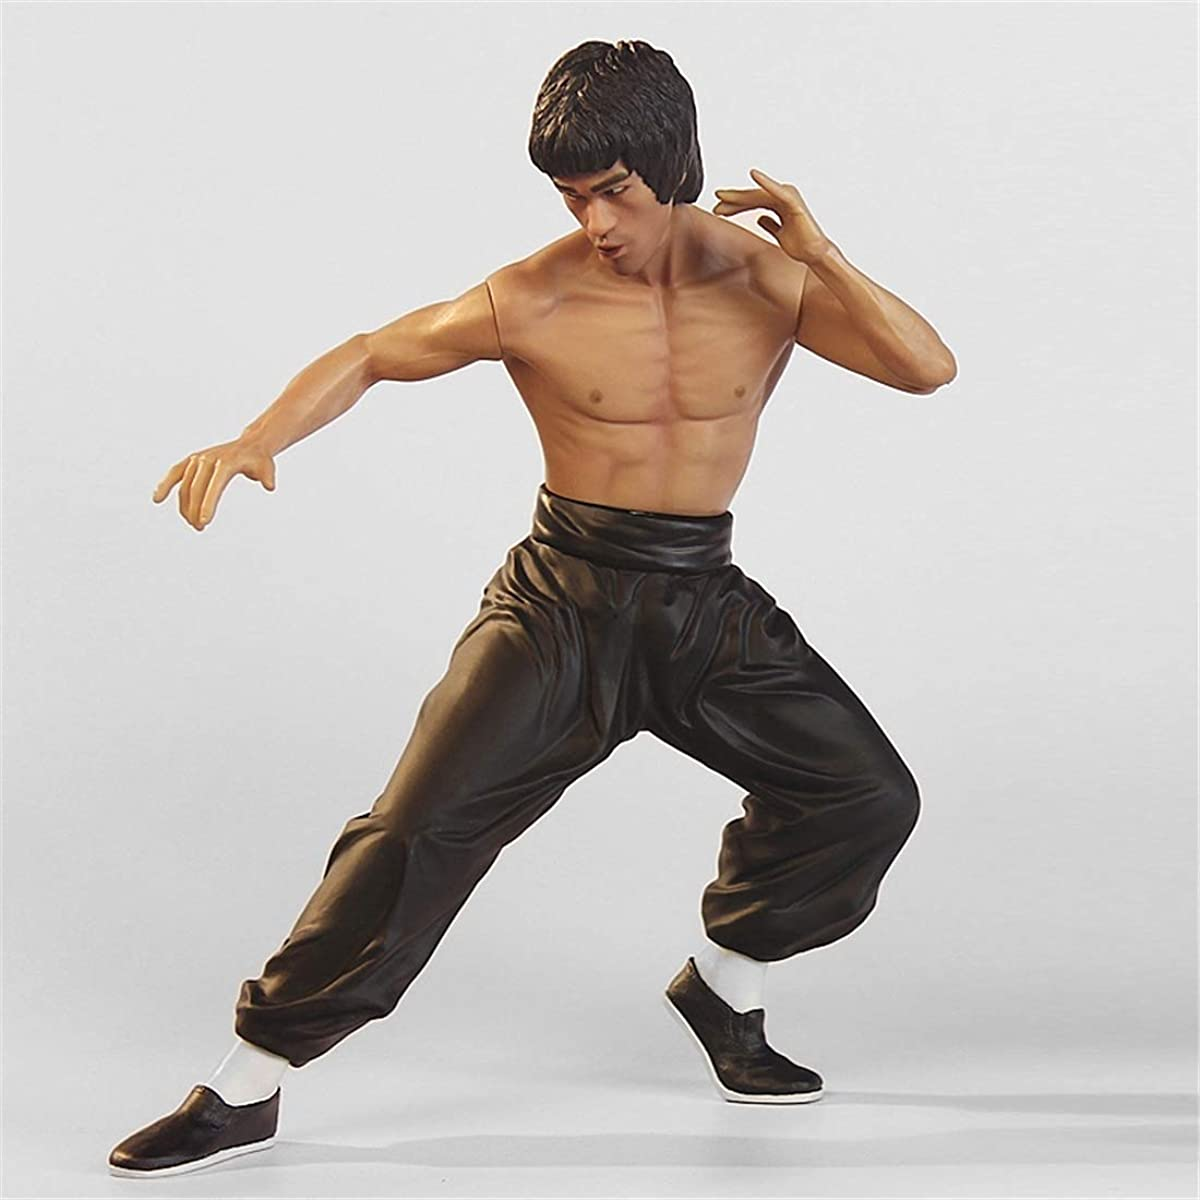 LEOO Bruce Lee Model Toy Doll Chinese Martial Arts Classic Action Hand (Color : Black)